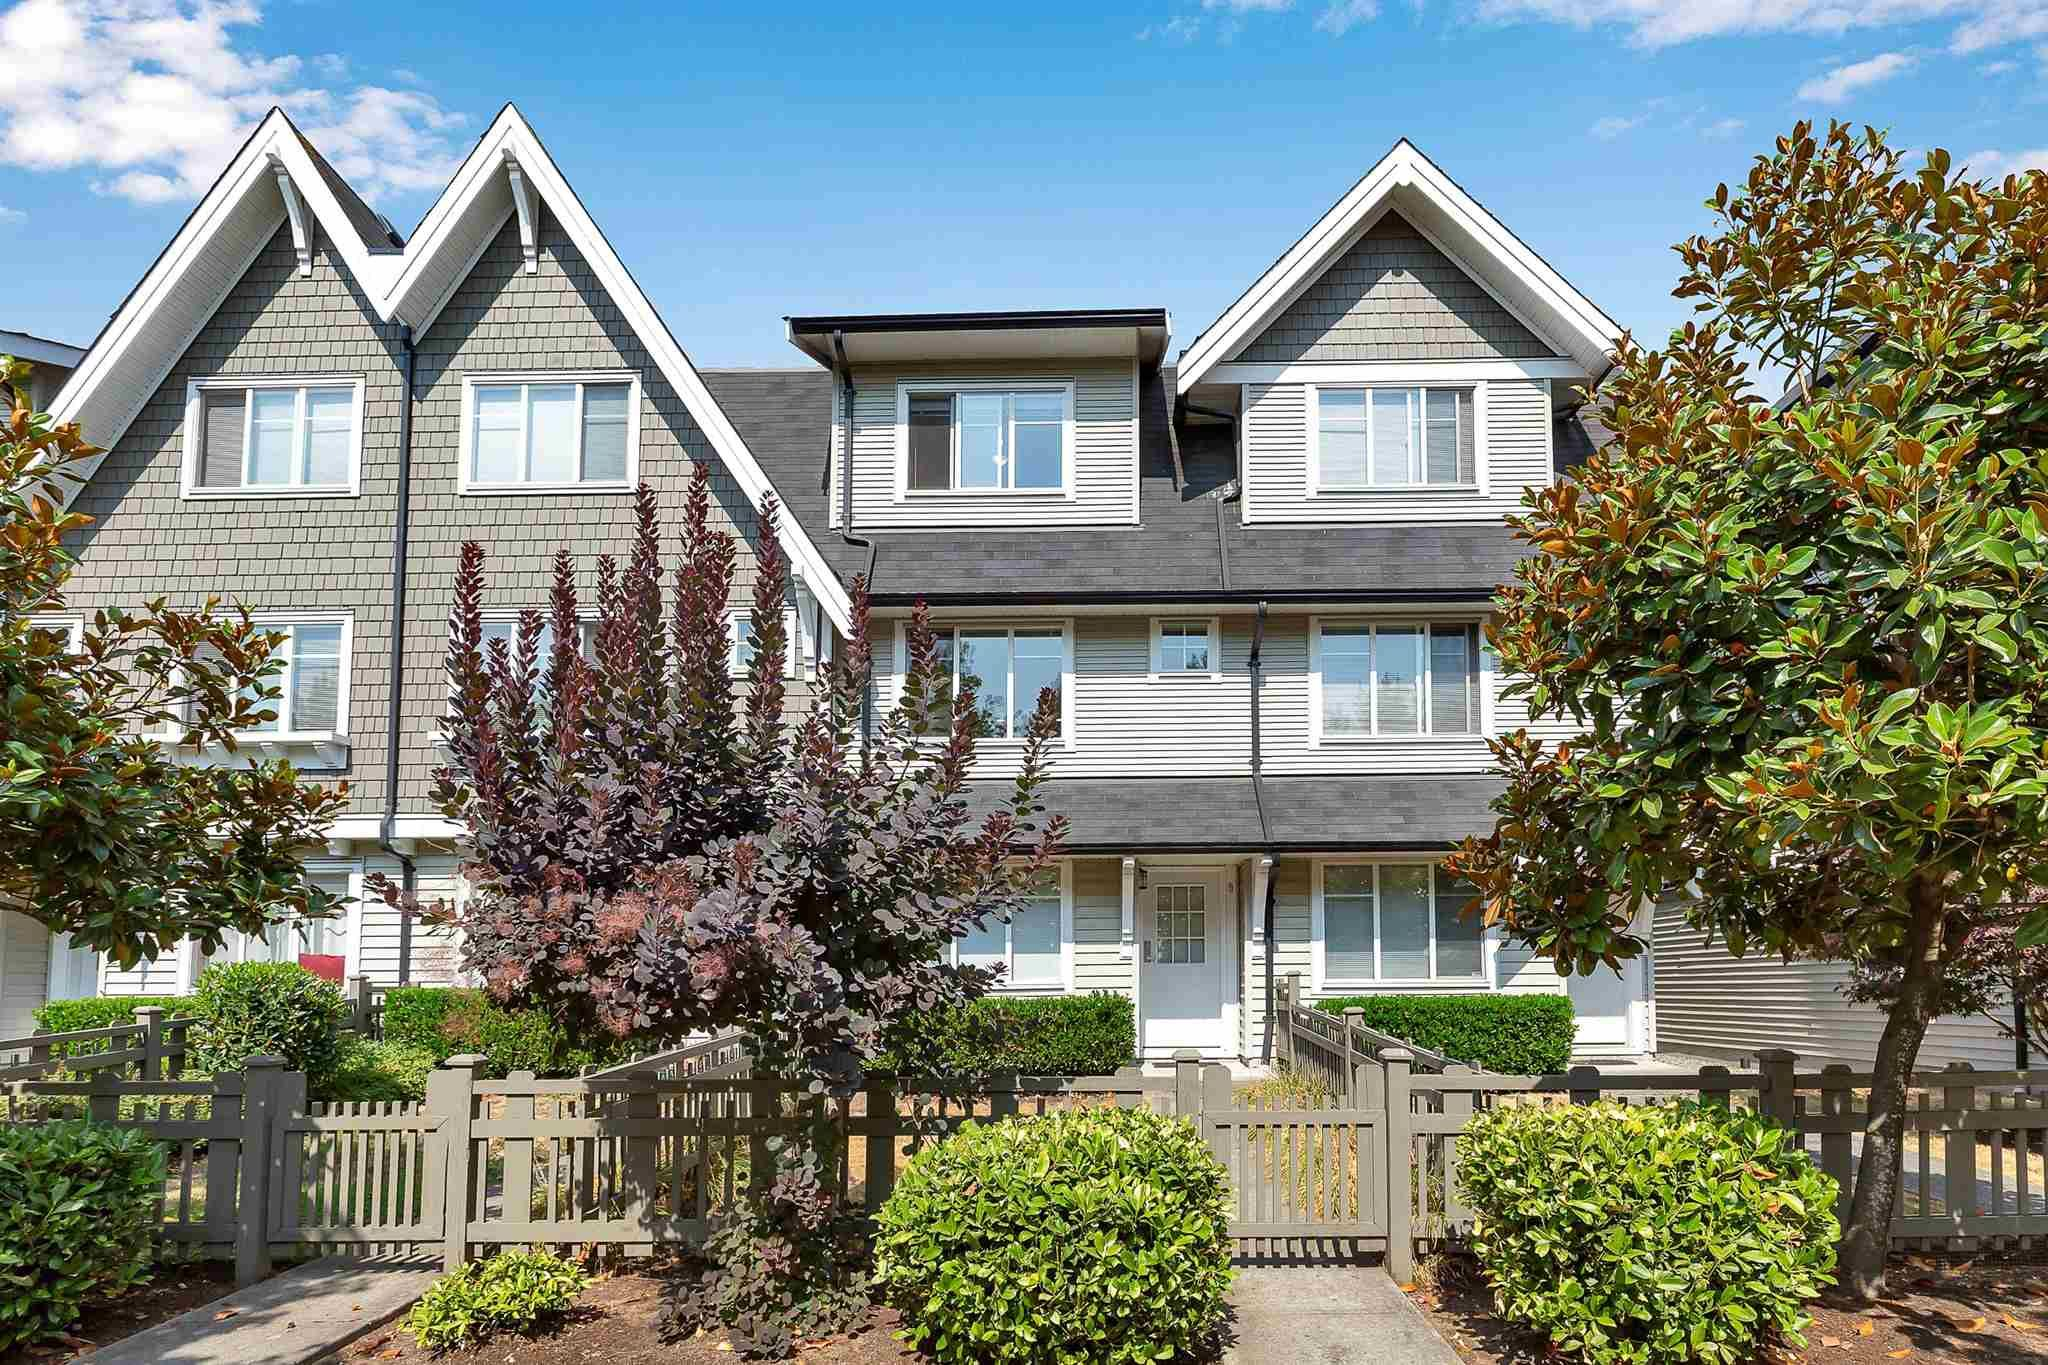 """Photo 1: Photos: 9 15871 85 Avenue in Surrey: Fleetwood Tynehead Townhouse for sale in """"Huckleberry"""" : MLS®# R2606668"""